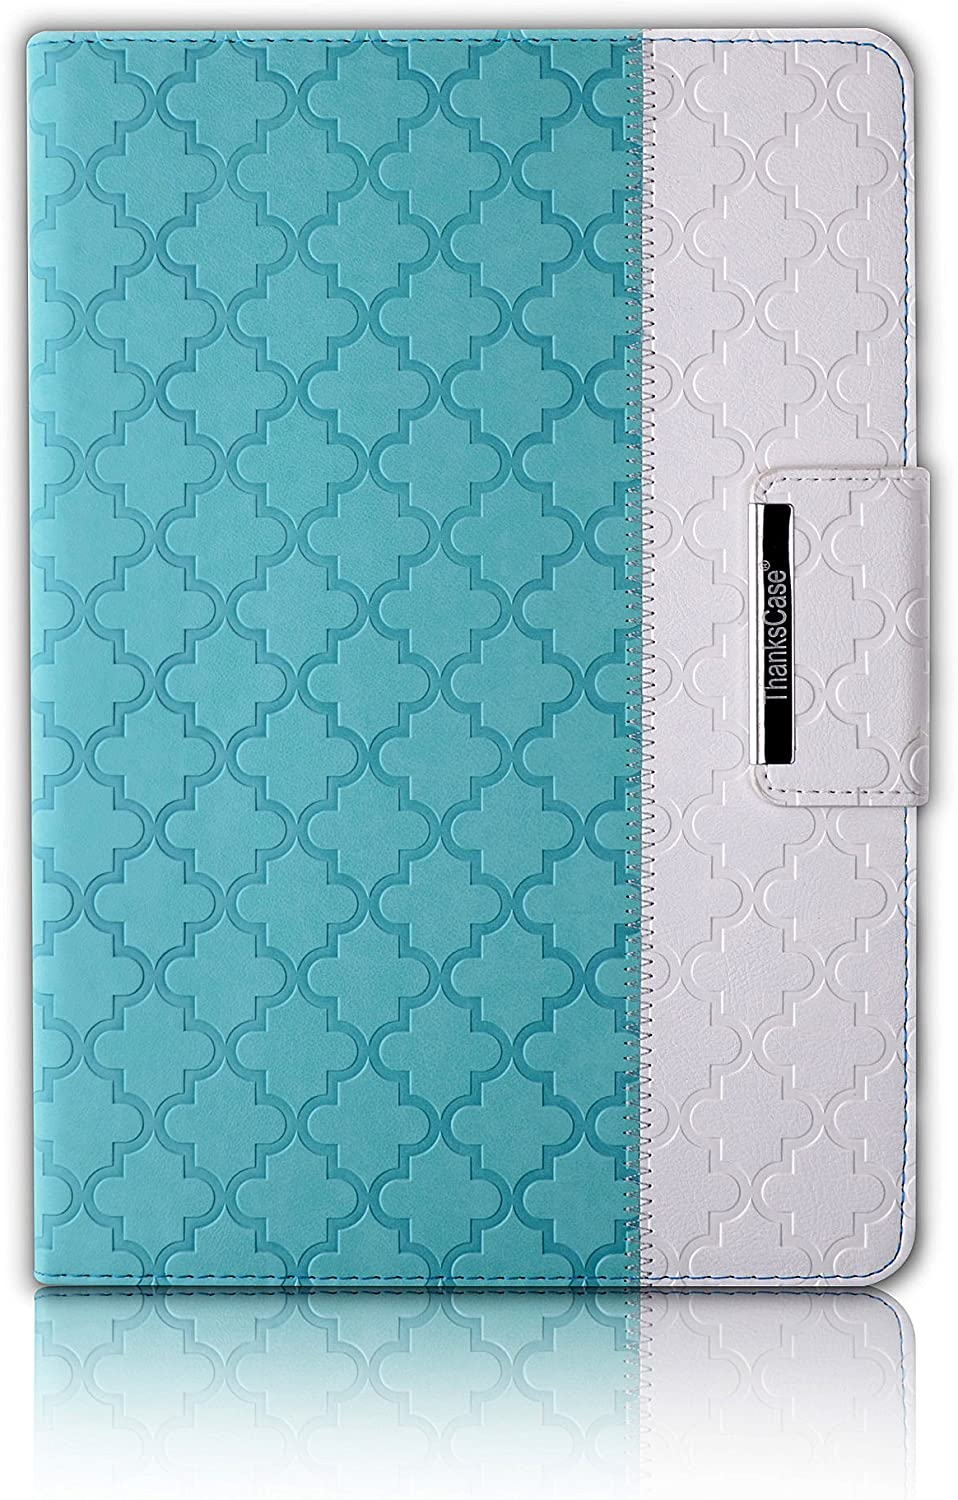 Thankscase Case for iPad Air 2, Rotating Leather Case Smart Cover with Beautiful Quatrefoil Lattice Embossed Pattern,Swivel Case Bulid-in Wallet Pocket and Hand Strap for iPad Air 2.(Mint Quatrefoil)